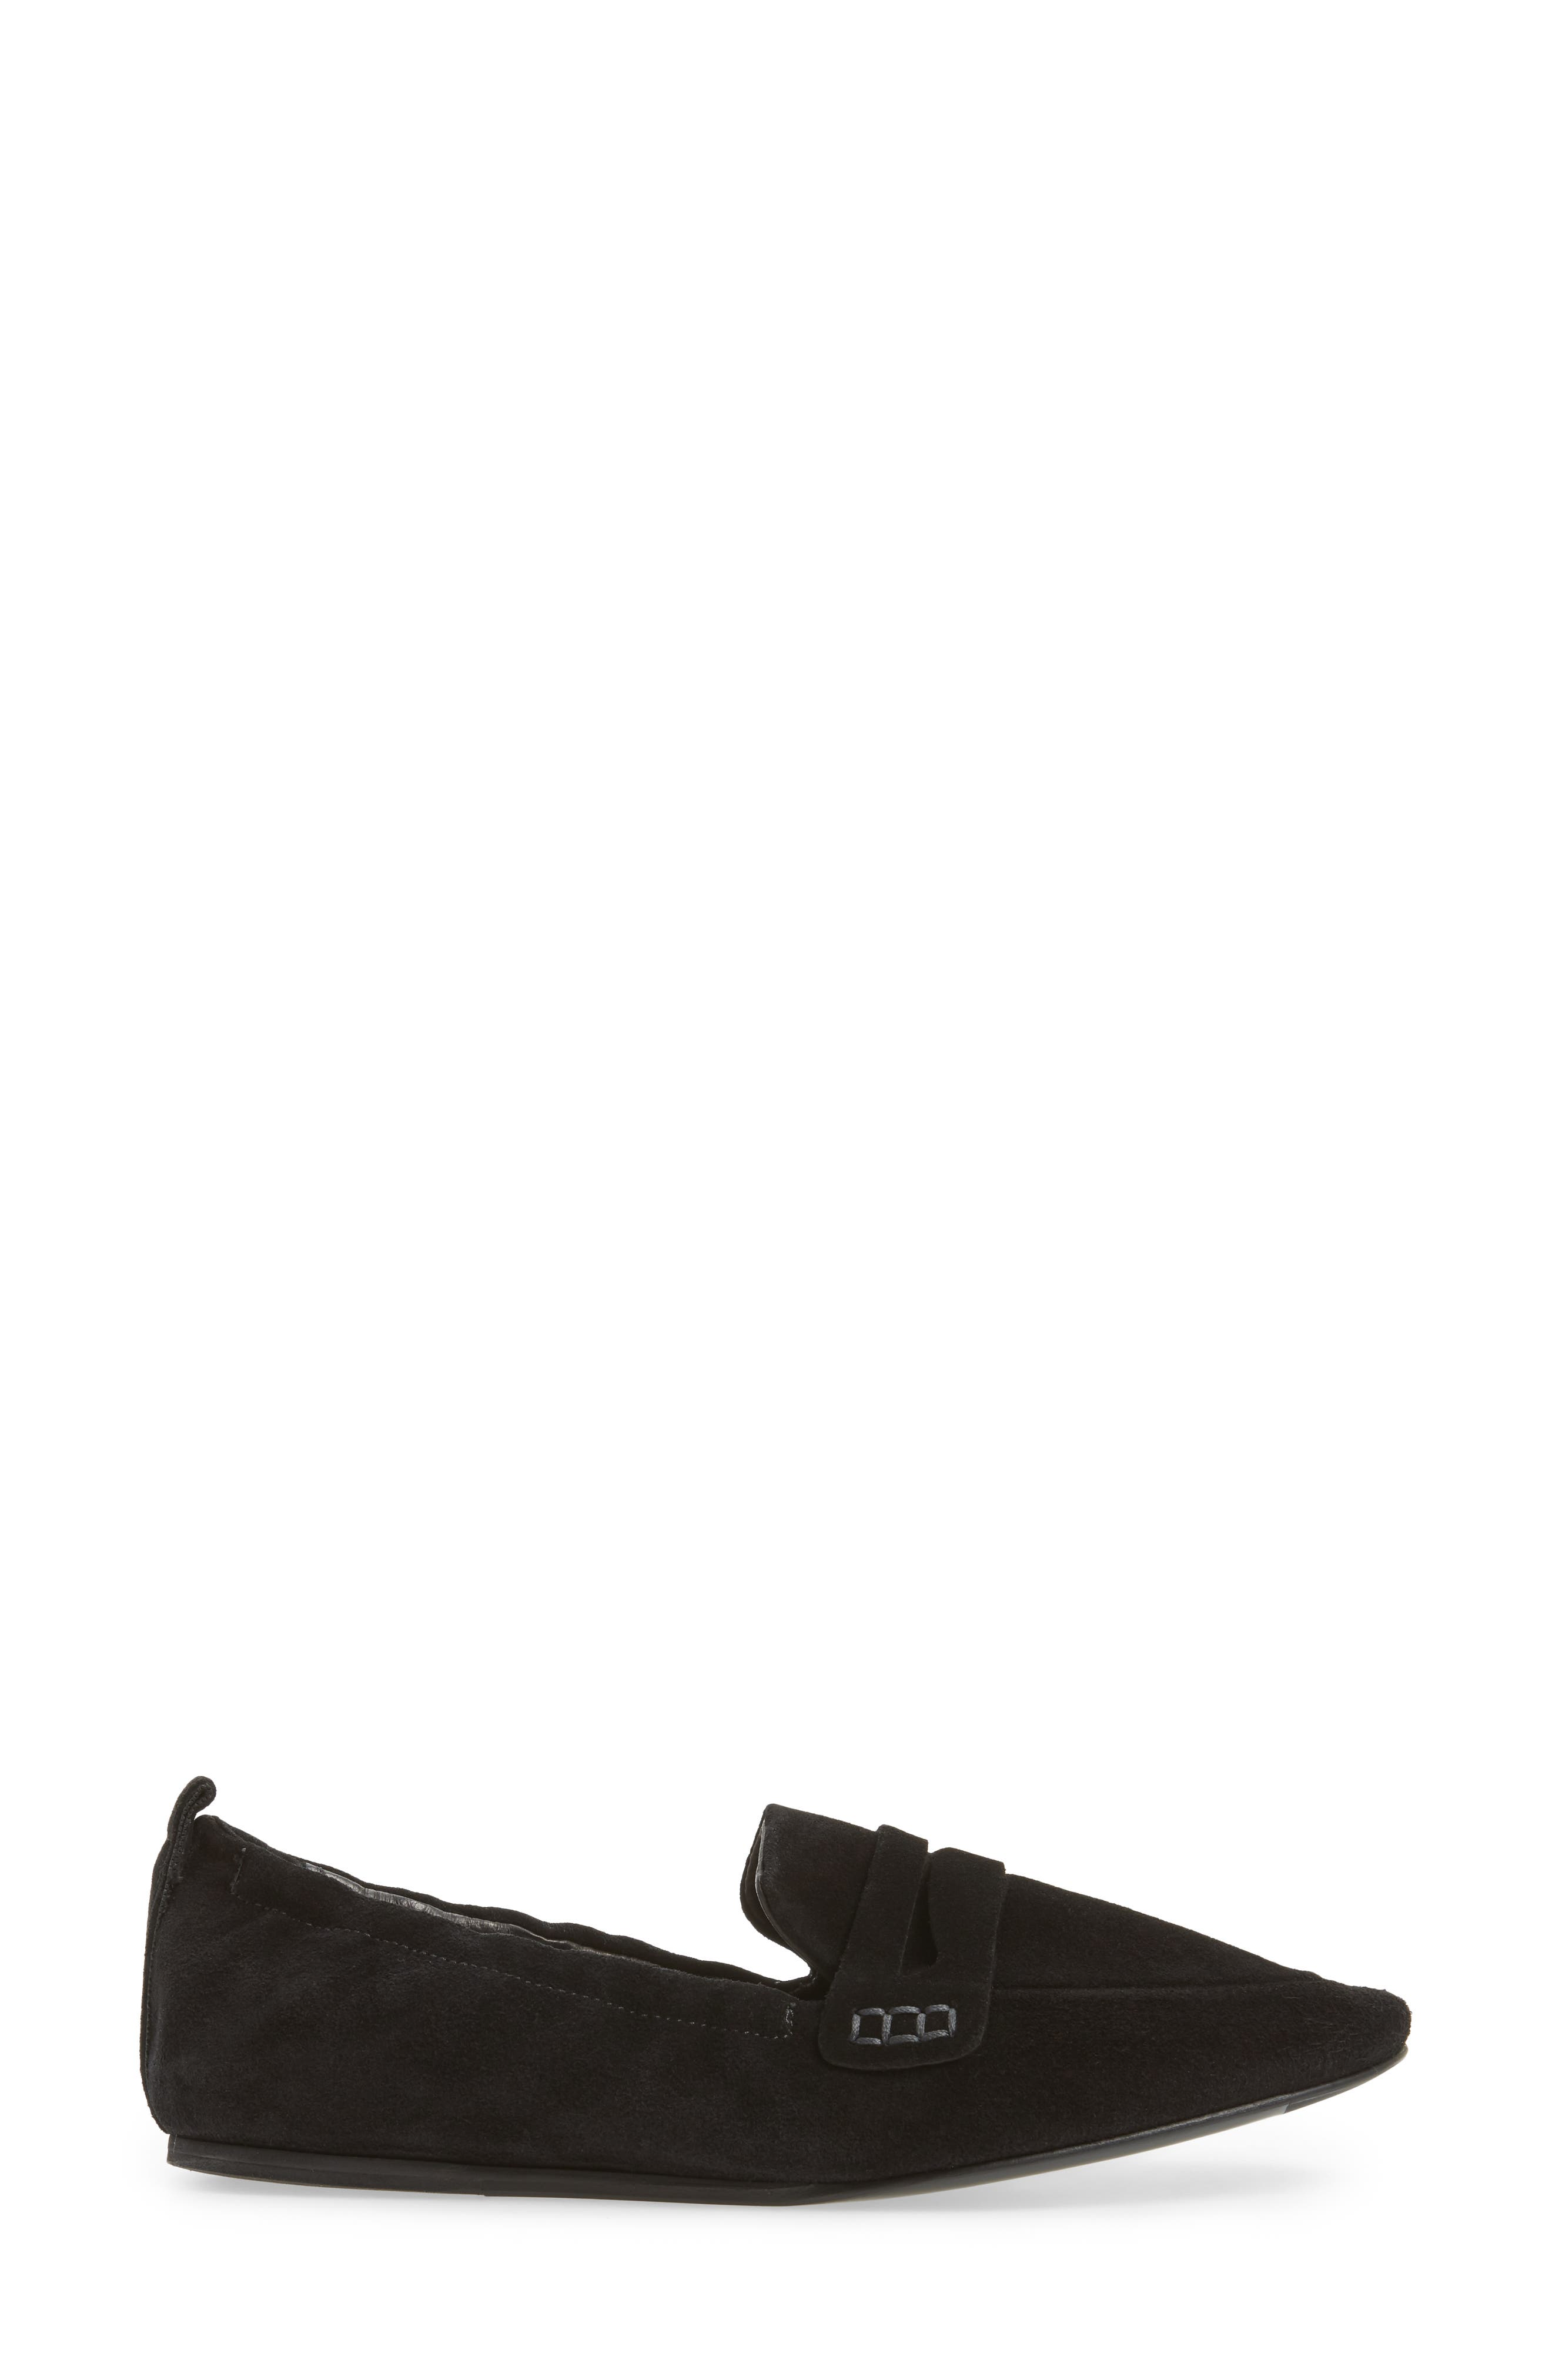 Milly Elastic Loafer Flat,                             Alternate thumbnail 3, color,                             001